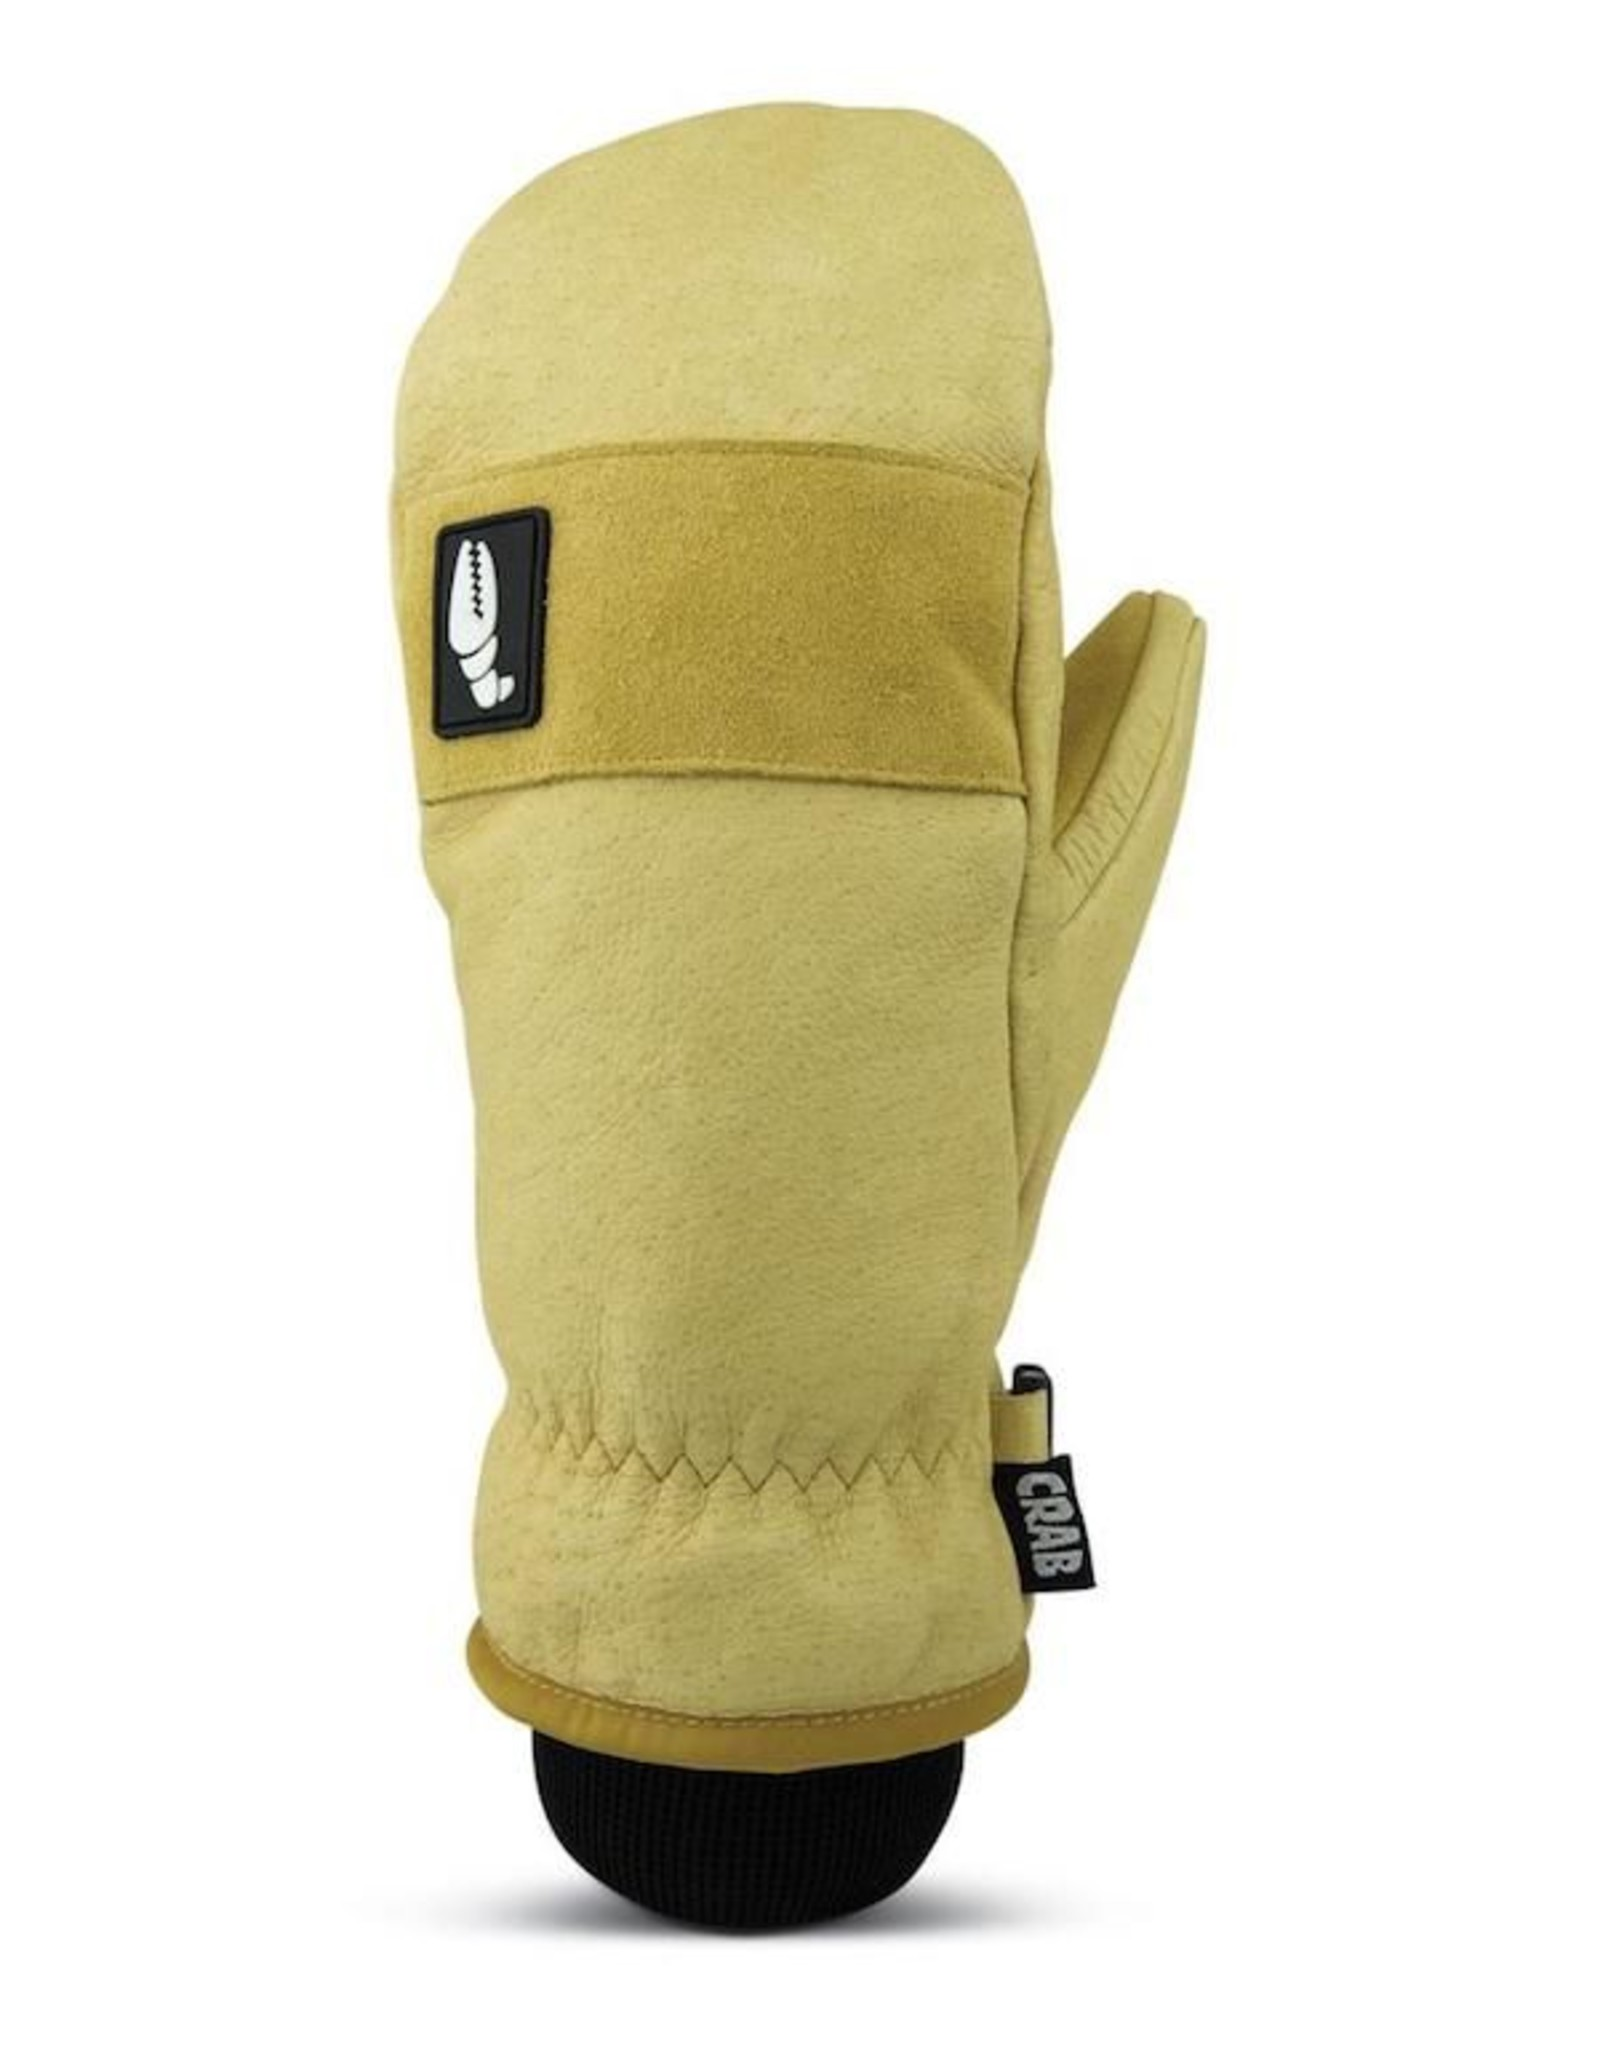 Crab Grab Crab Grab - Man Hands - XL - Tan